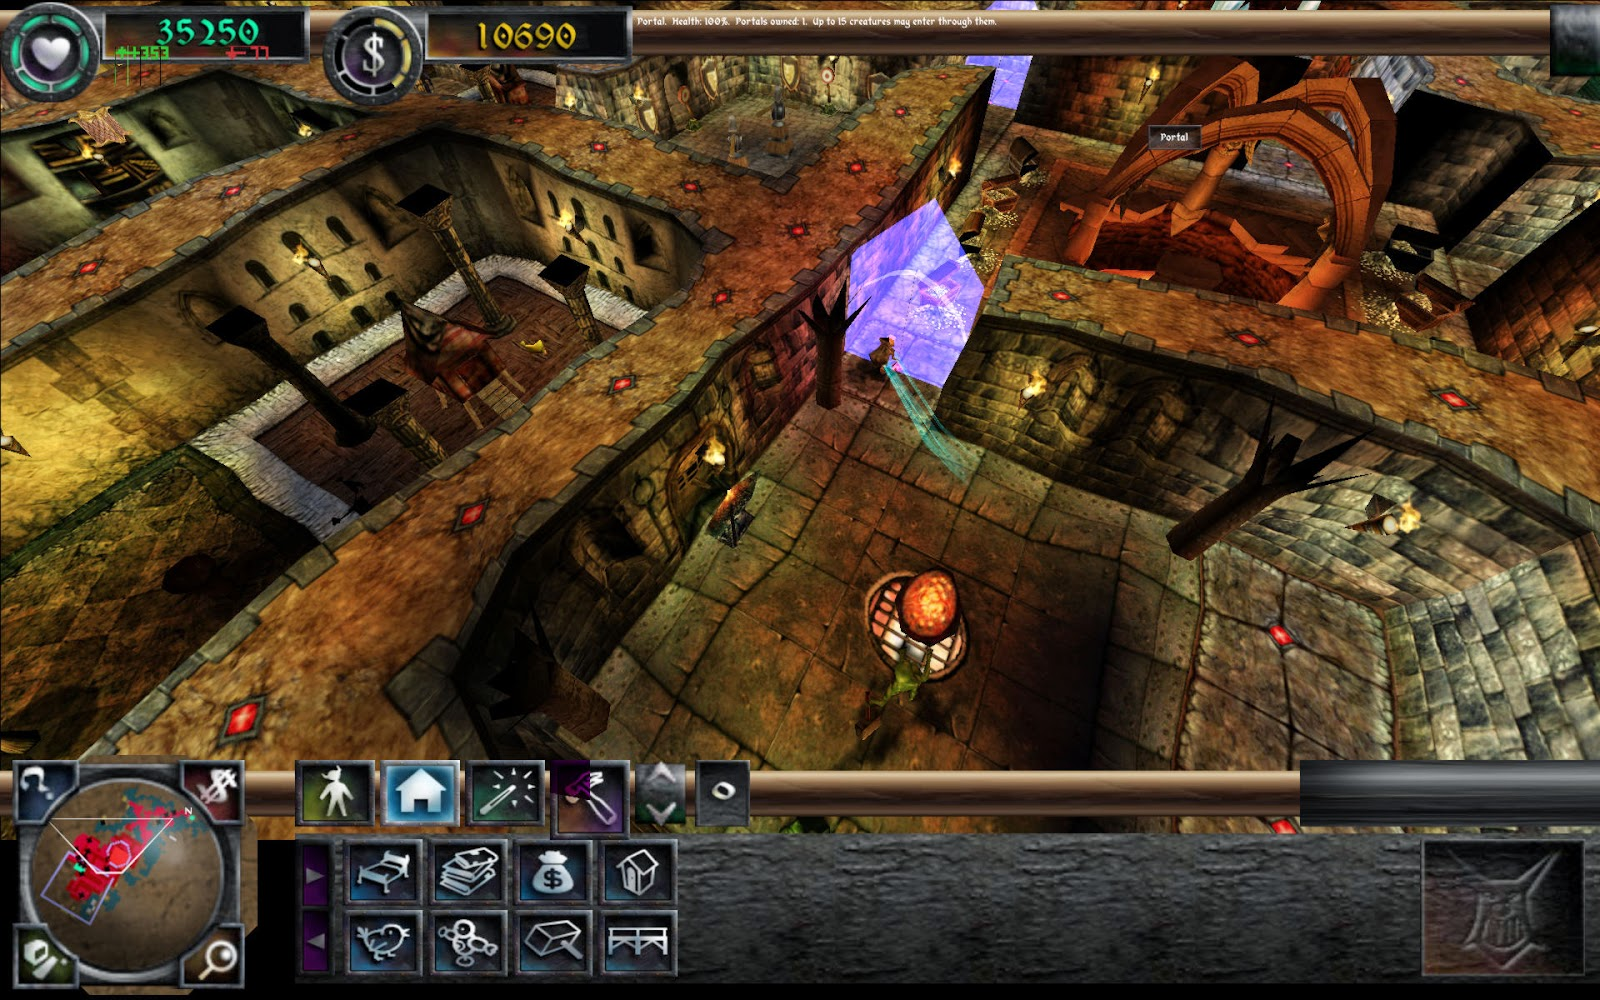 dungeon Keeper 2 pc game download free